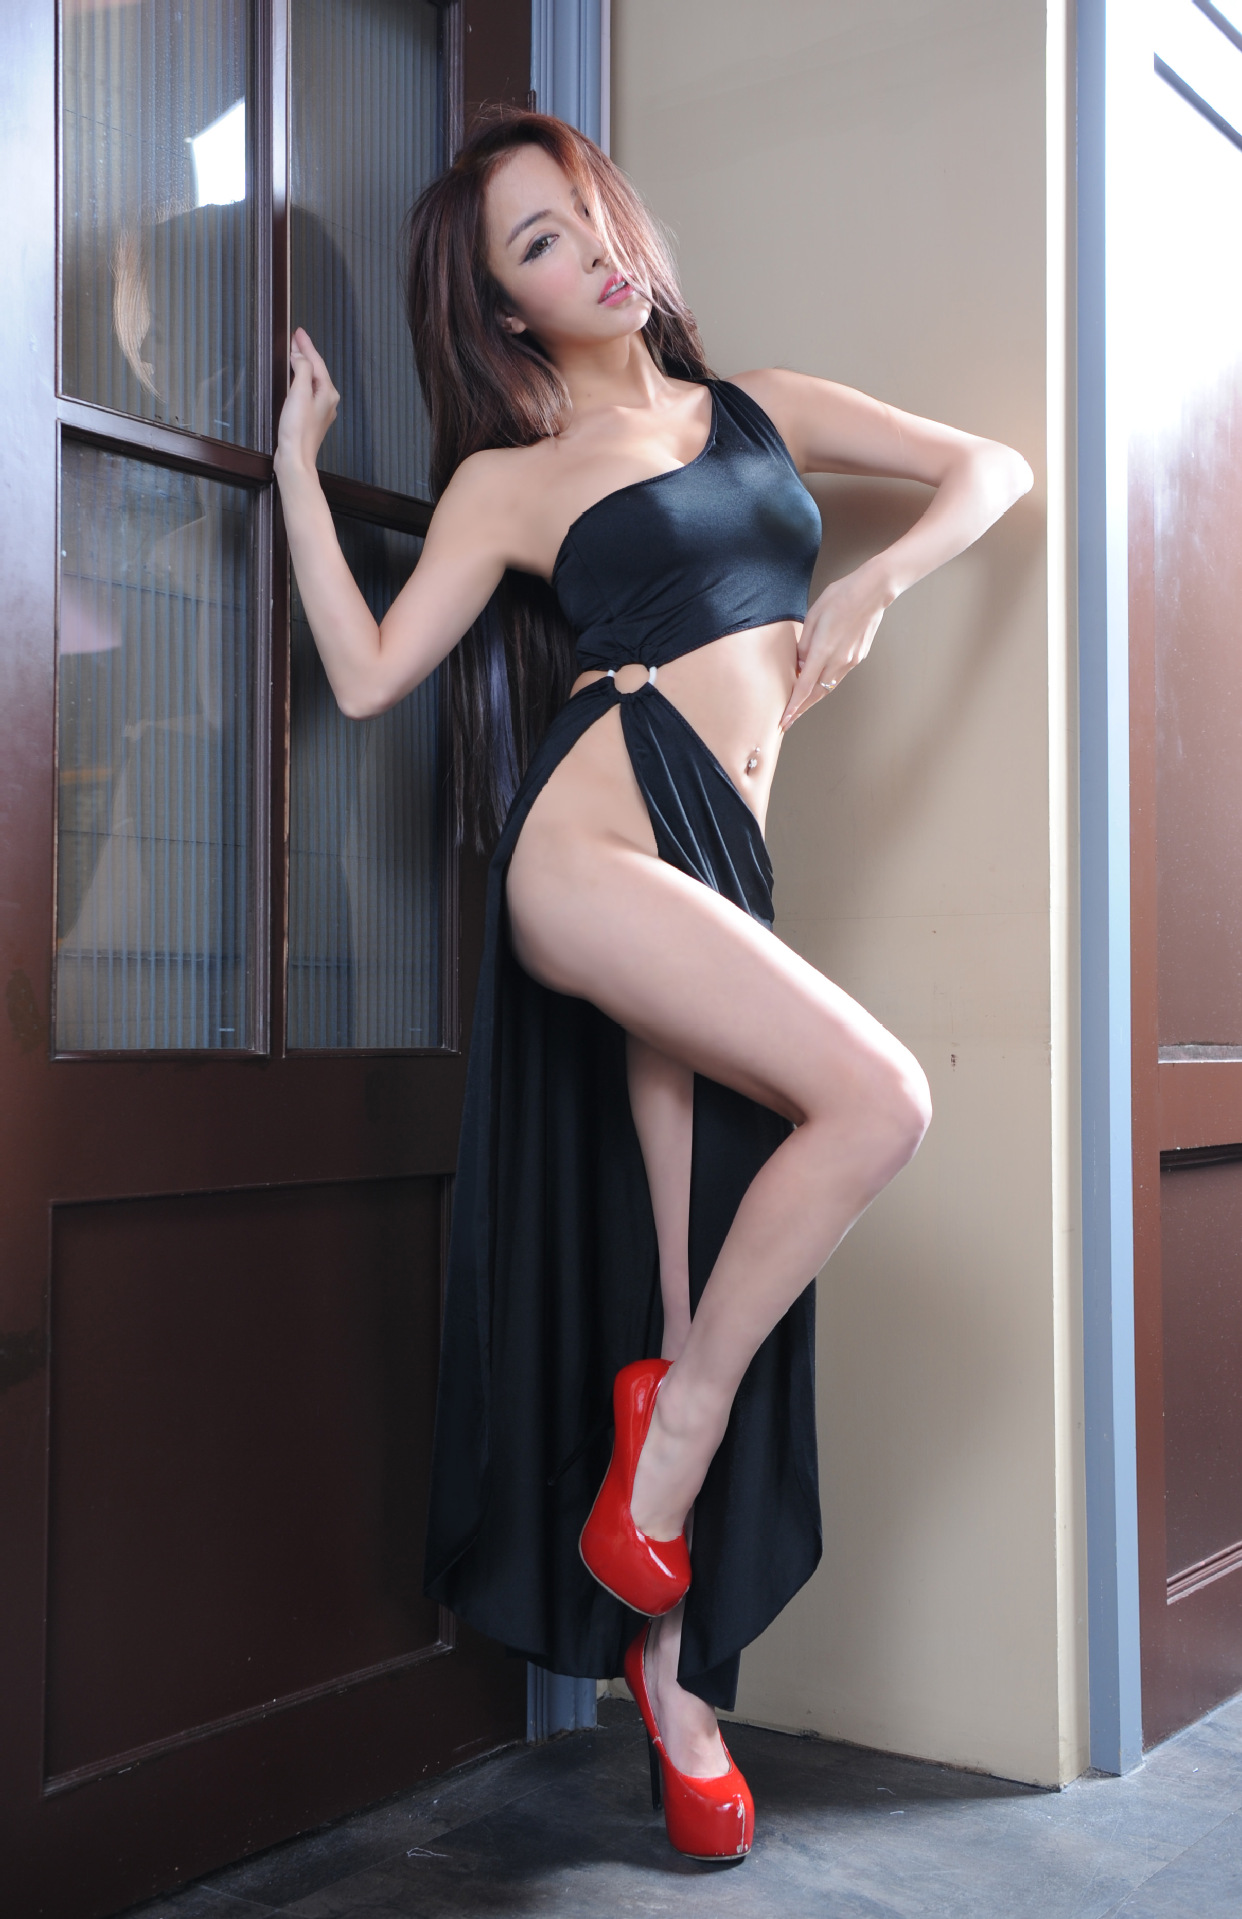 Drop Ship Sexy Lingerie Women Erotic Lingerie Hot Sex Products Sexy Costumes Black Underwear Slips Intimates Dress Sleepwear in Sexy Costumes from Novelty Special Use